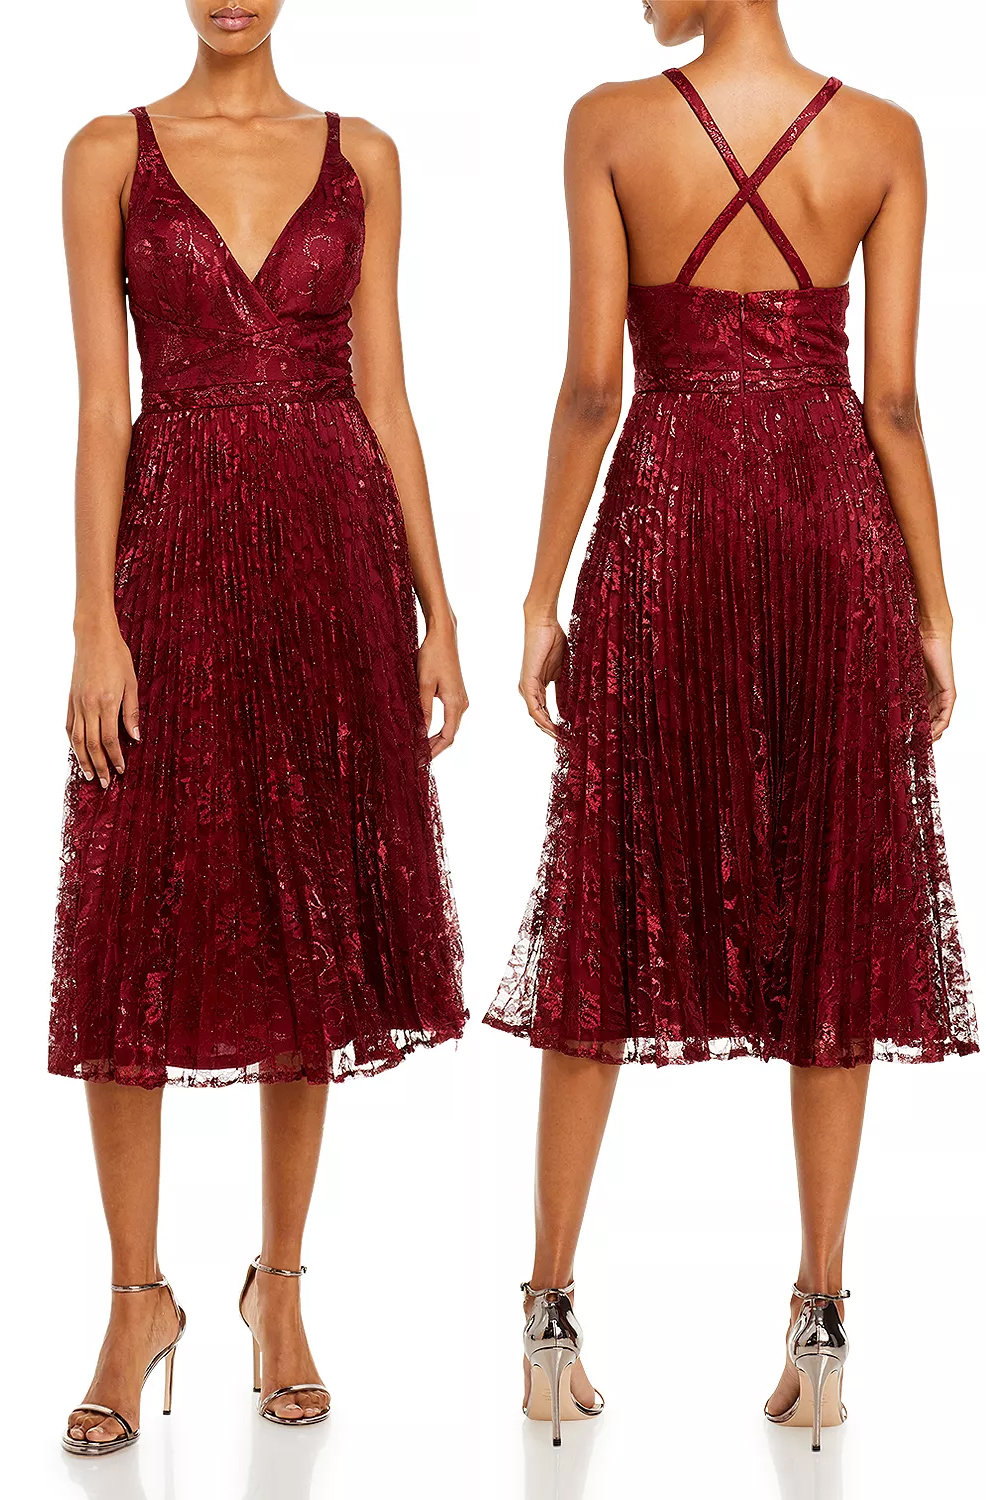 Burgundy Pleated Dress 2021. Burgundy Dress for a Winter Wedding 2021. Winter Wedding Guest Dresses 2021. What to wear for a winter wedding 2021. Burgundy Mother of the Bride Outfits 2021. What to wear for a Christmas Wedding 2021. Winter Wedding Guest Dresses 2021. Winter Wedding Guest Outfit ideas 2021